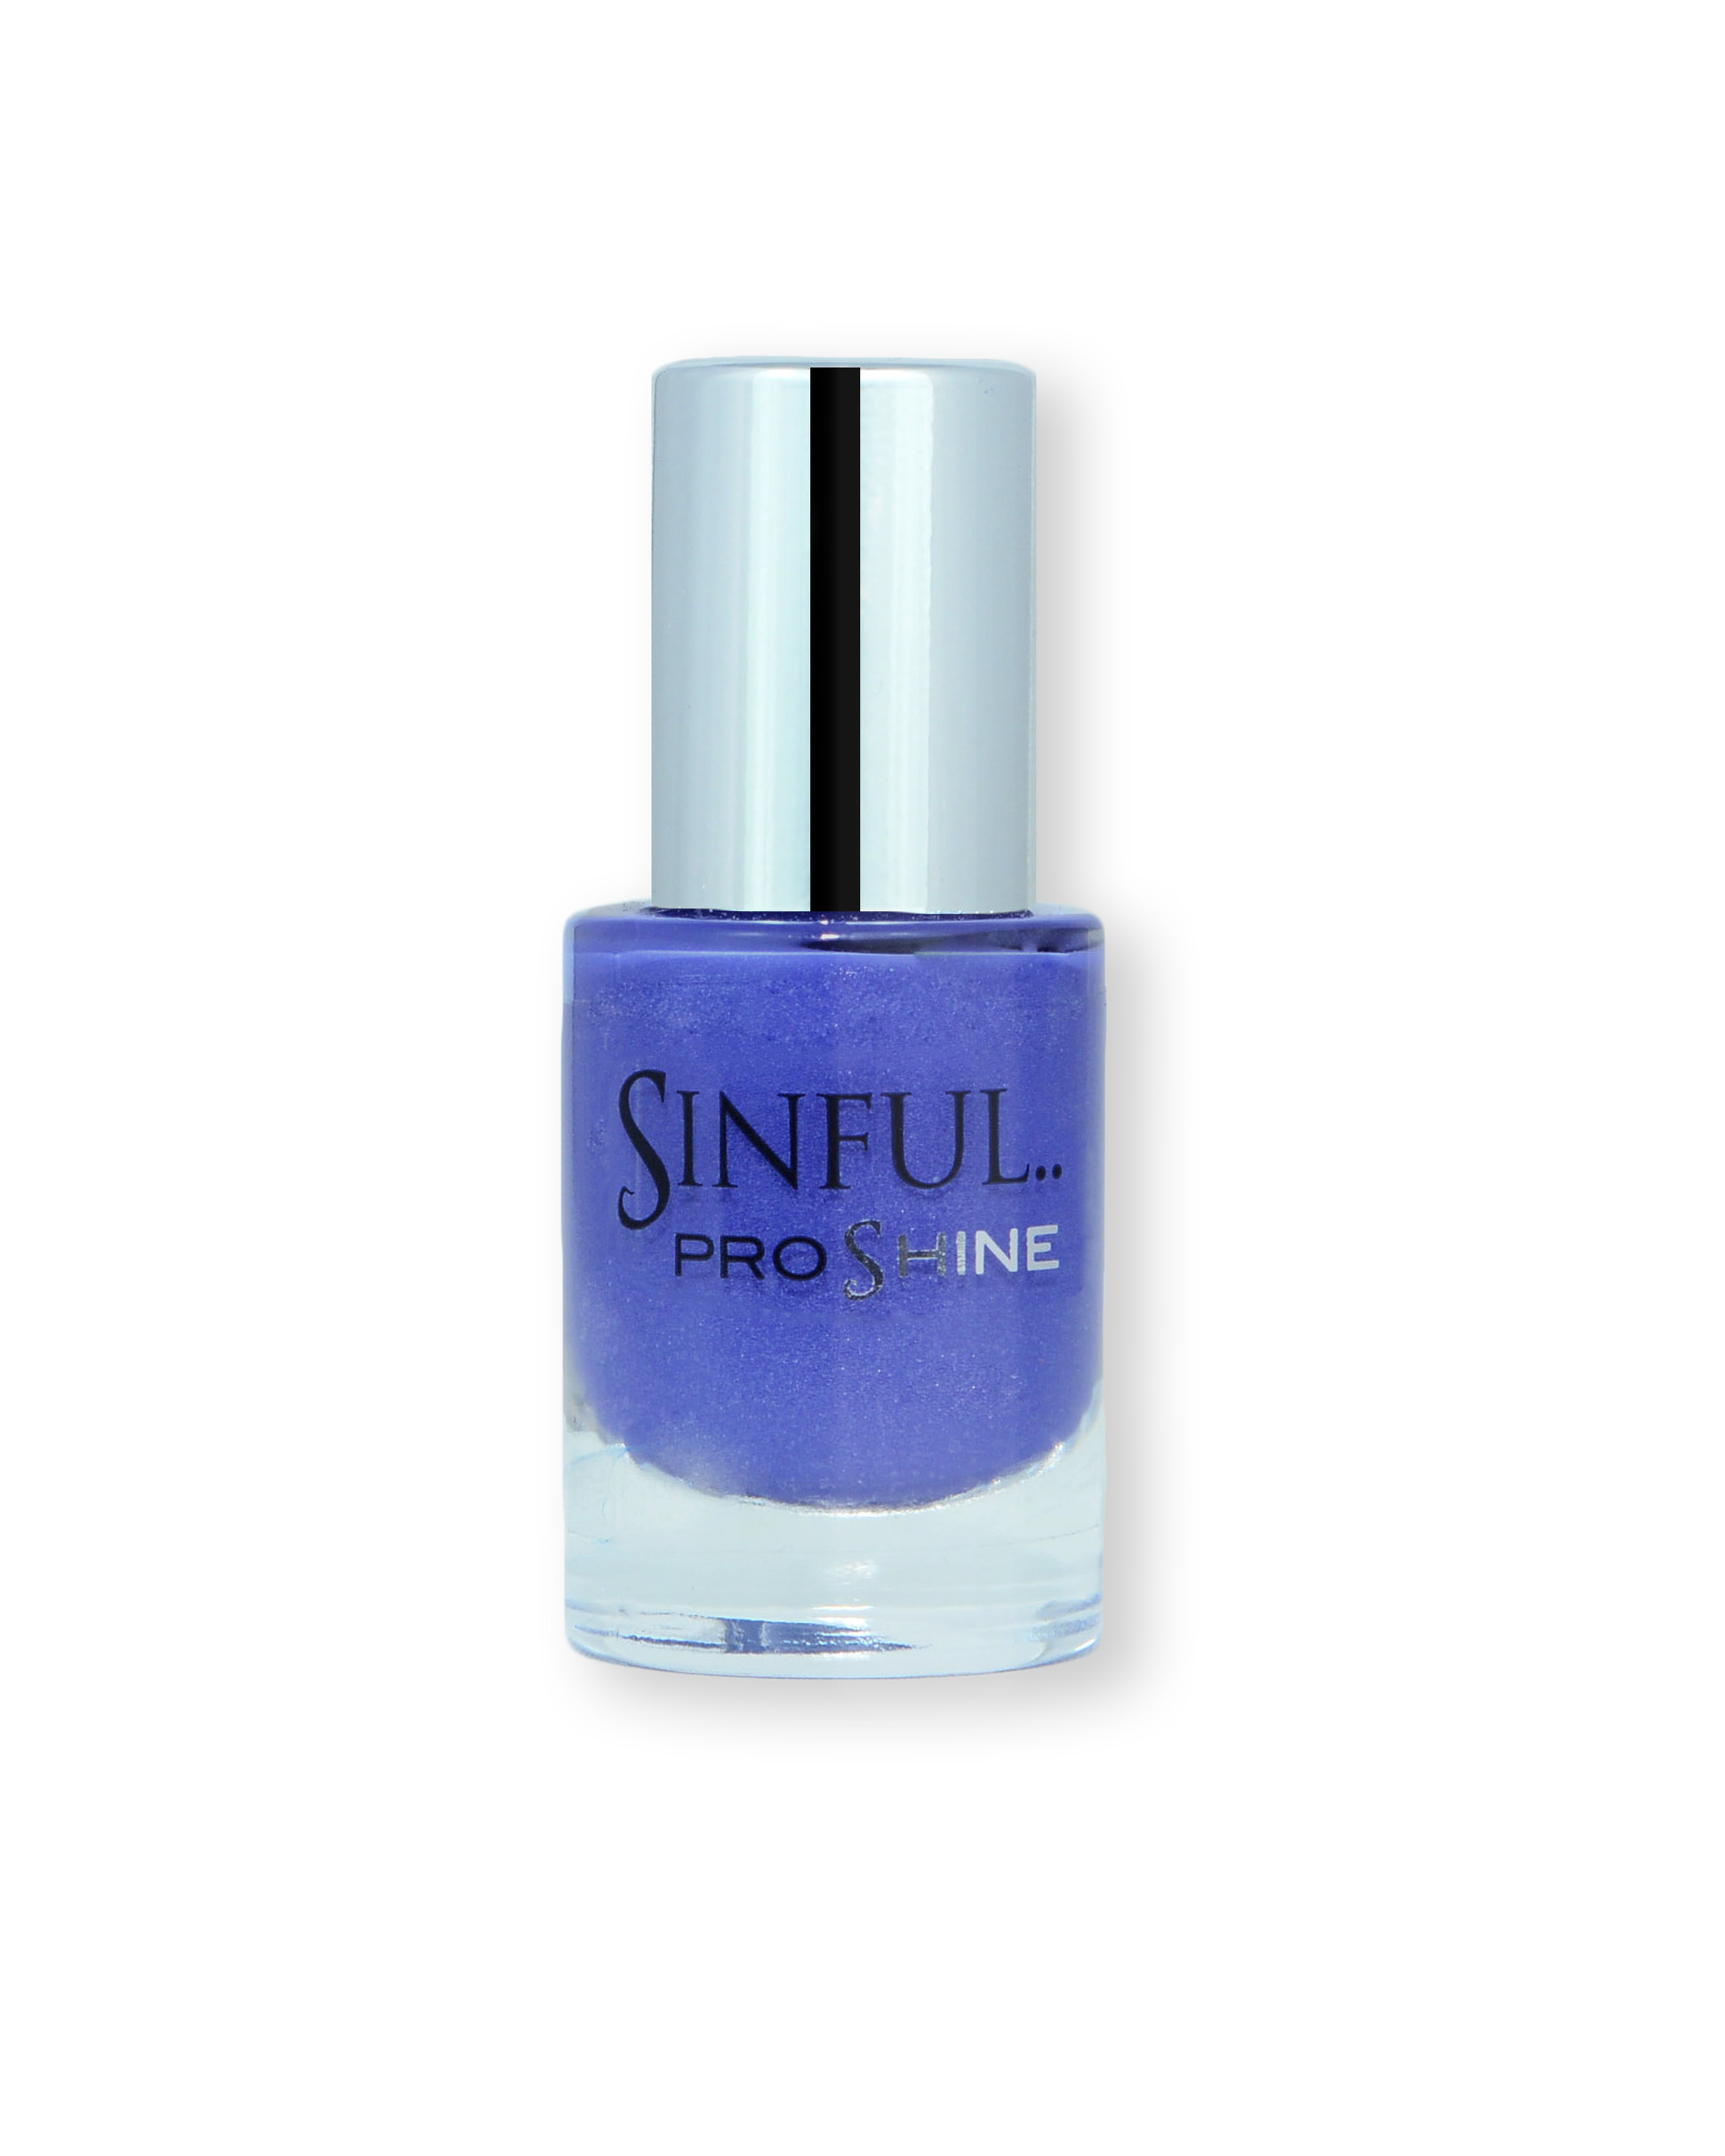 Sinful PROshine is a revolution into top spec imitation gel-like formula, easy application, full coverage and a sleek finish. Spoil yourself with the choice of 42 shades, expertly formulated with the finest grade of pigments. Suspended: Rich navy blue with a soft shimmer